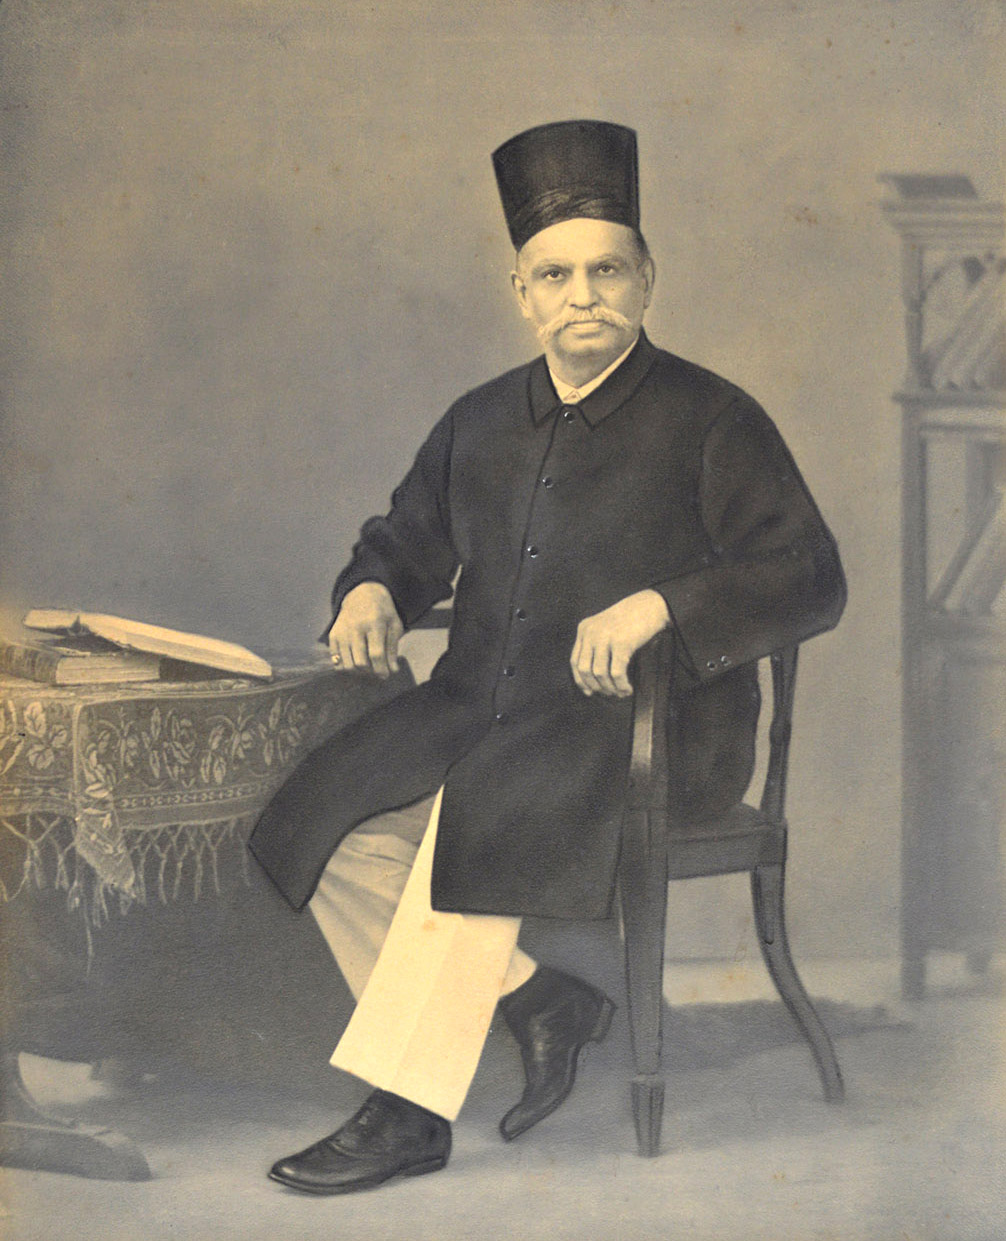 Sheth Manekji Rustomji Kotwal